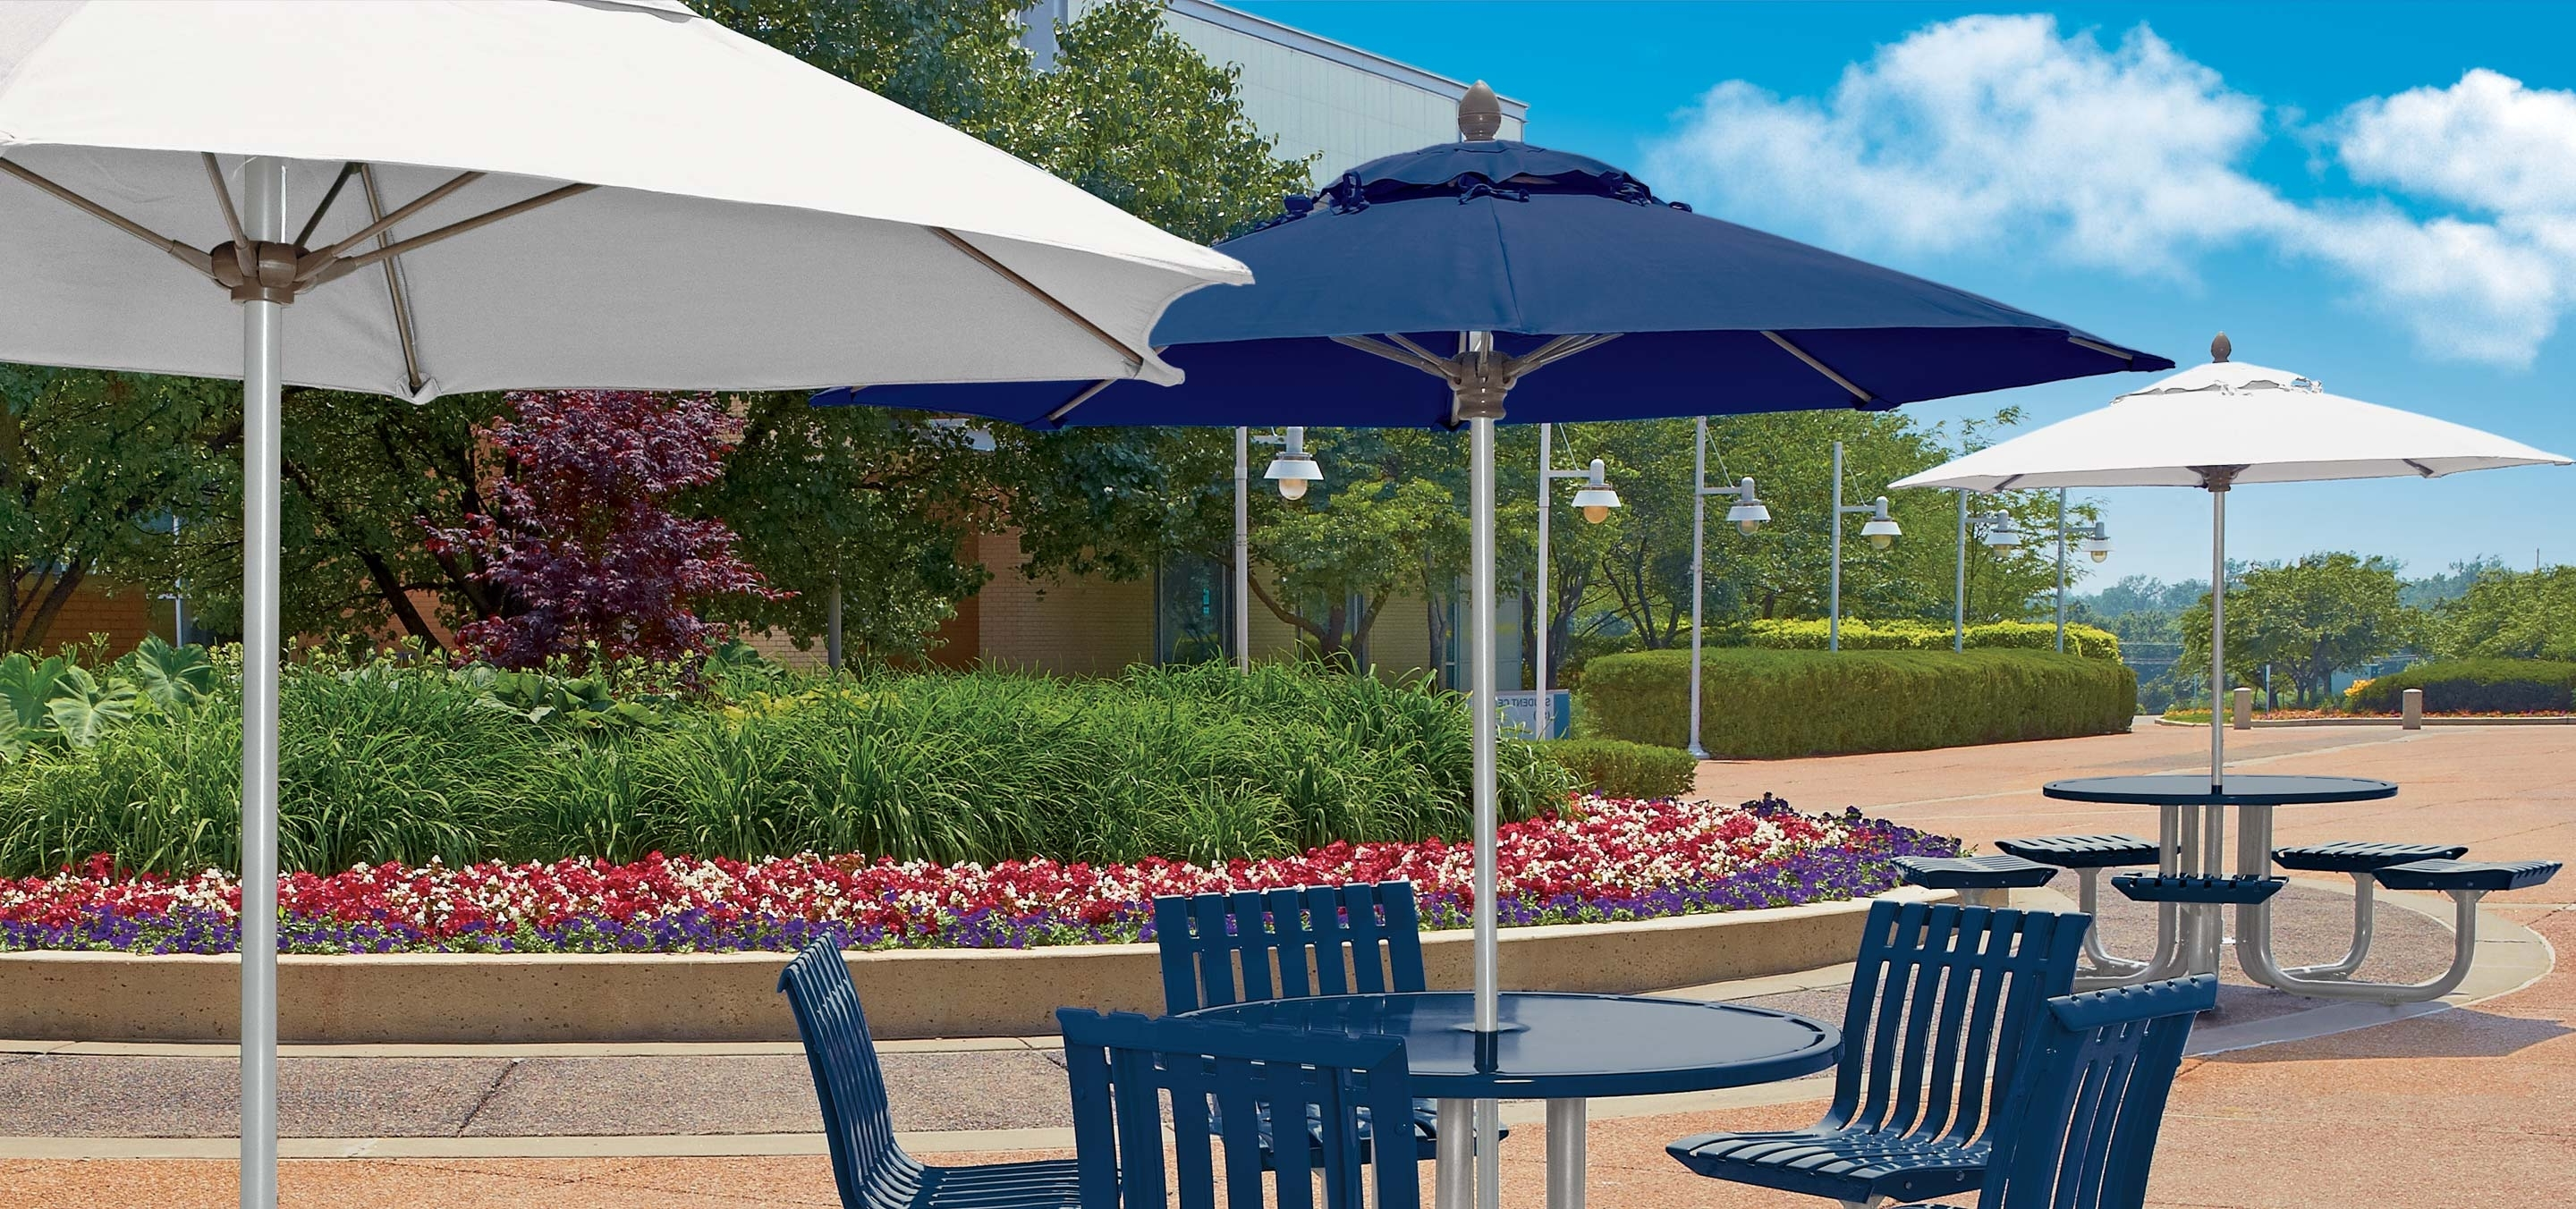 Patio Umbrellas For High Wind Areas In Widely Used Umbrellas (View 12 of 20)